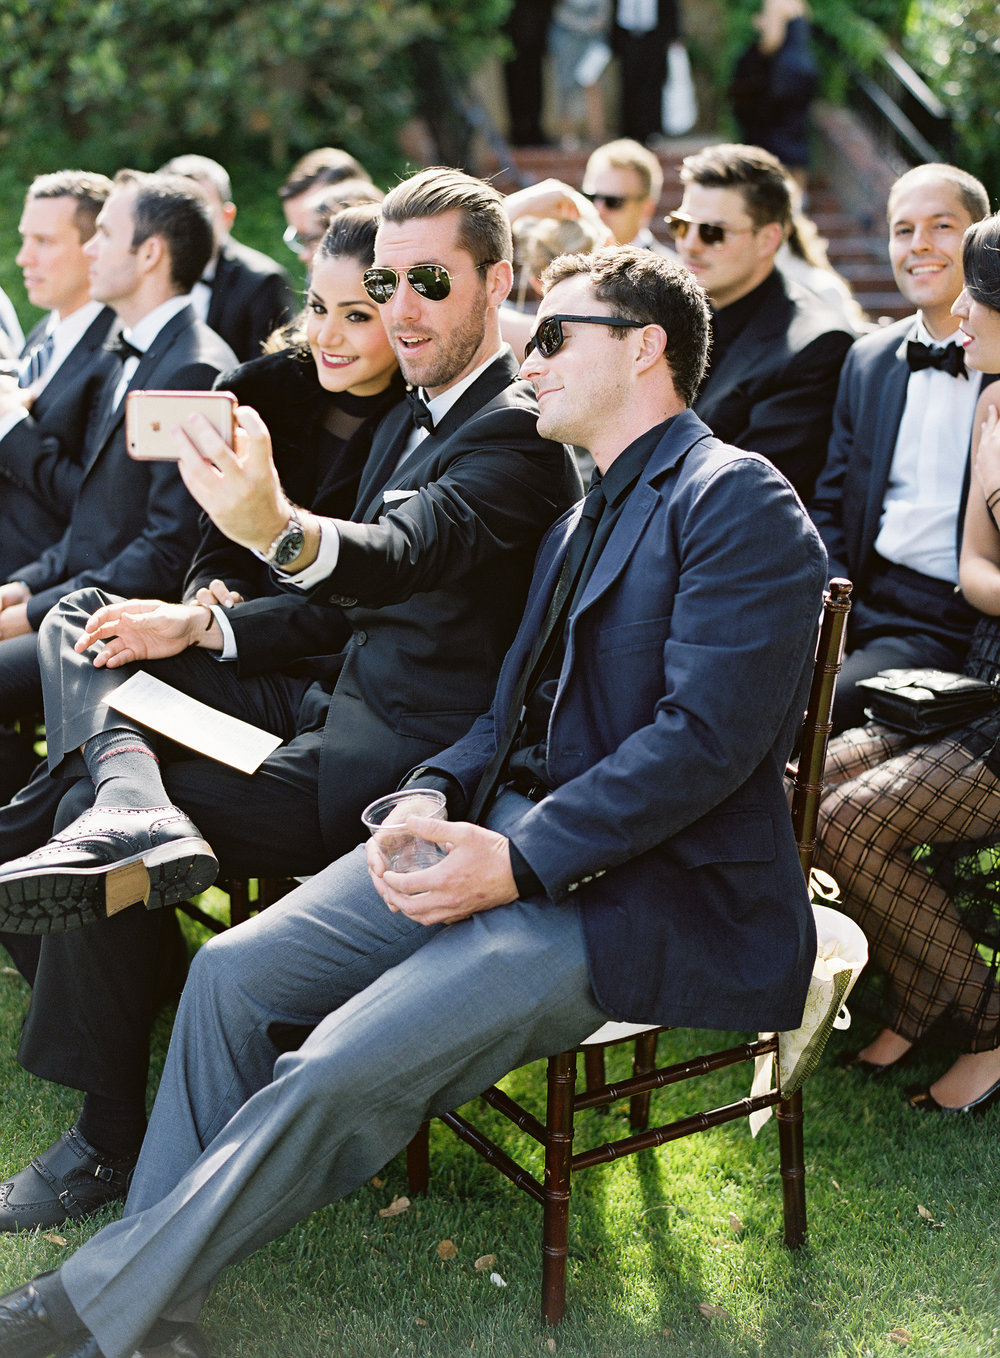 Meghan Mehan Photography | Fine Art Film Wedding Photographer | California | San Francisco | Napa | Sonoma | Santa Barbara | Big Sur | Destination Wedding Photographer 120.jpg